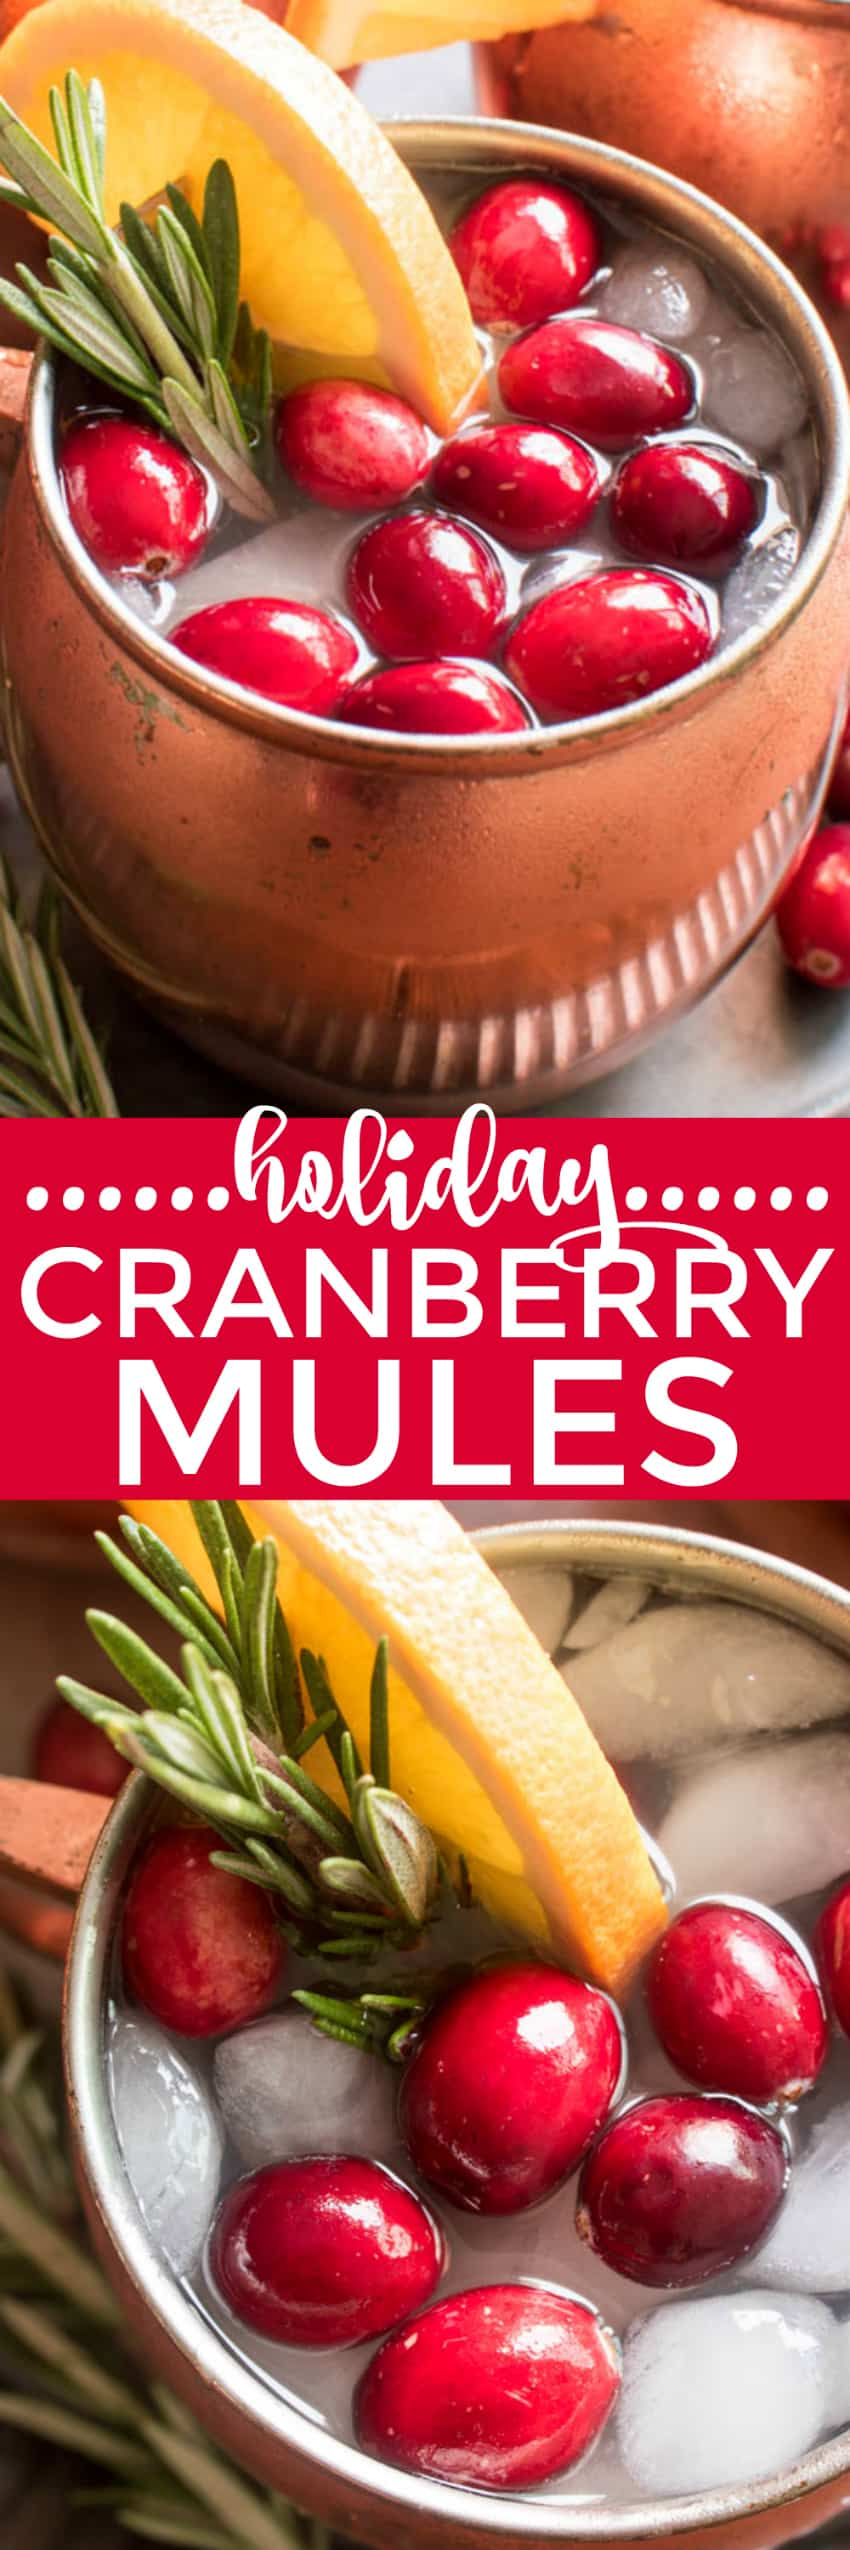 If you love Moscow Mules, these Holiday Cranberry Mules are sure to be a hit! Loaded with the delicious flavors of cranberry, orange, and ginger, and garnished with a sprig of fresh rosemary, these Mules are the perfect cocktails for your holiday season. And they're not only delicious, but beautiful, too! Which makes them an obvious addition to your Thanksgiving, Christmas, and New Years Eve menu. Best of all, these drinks come together quickly with just a handful of simple ingredients....and they can be pre-mixed for easy entertaining. If you're looking for a new go-to beverage this holiday season, look no further. These Holiday Cranberry Mules are IT!